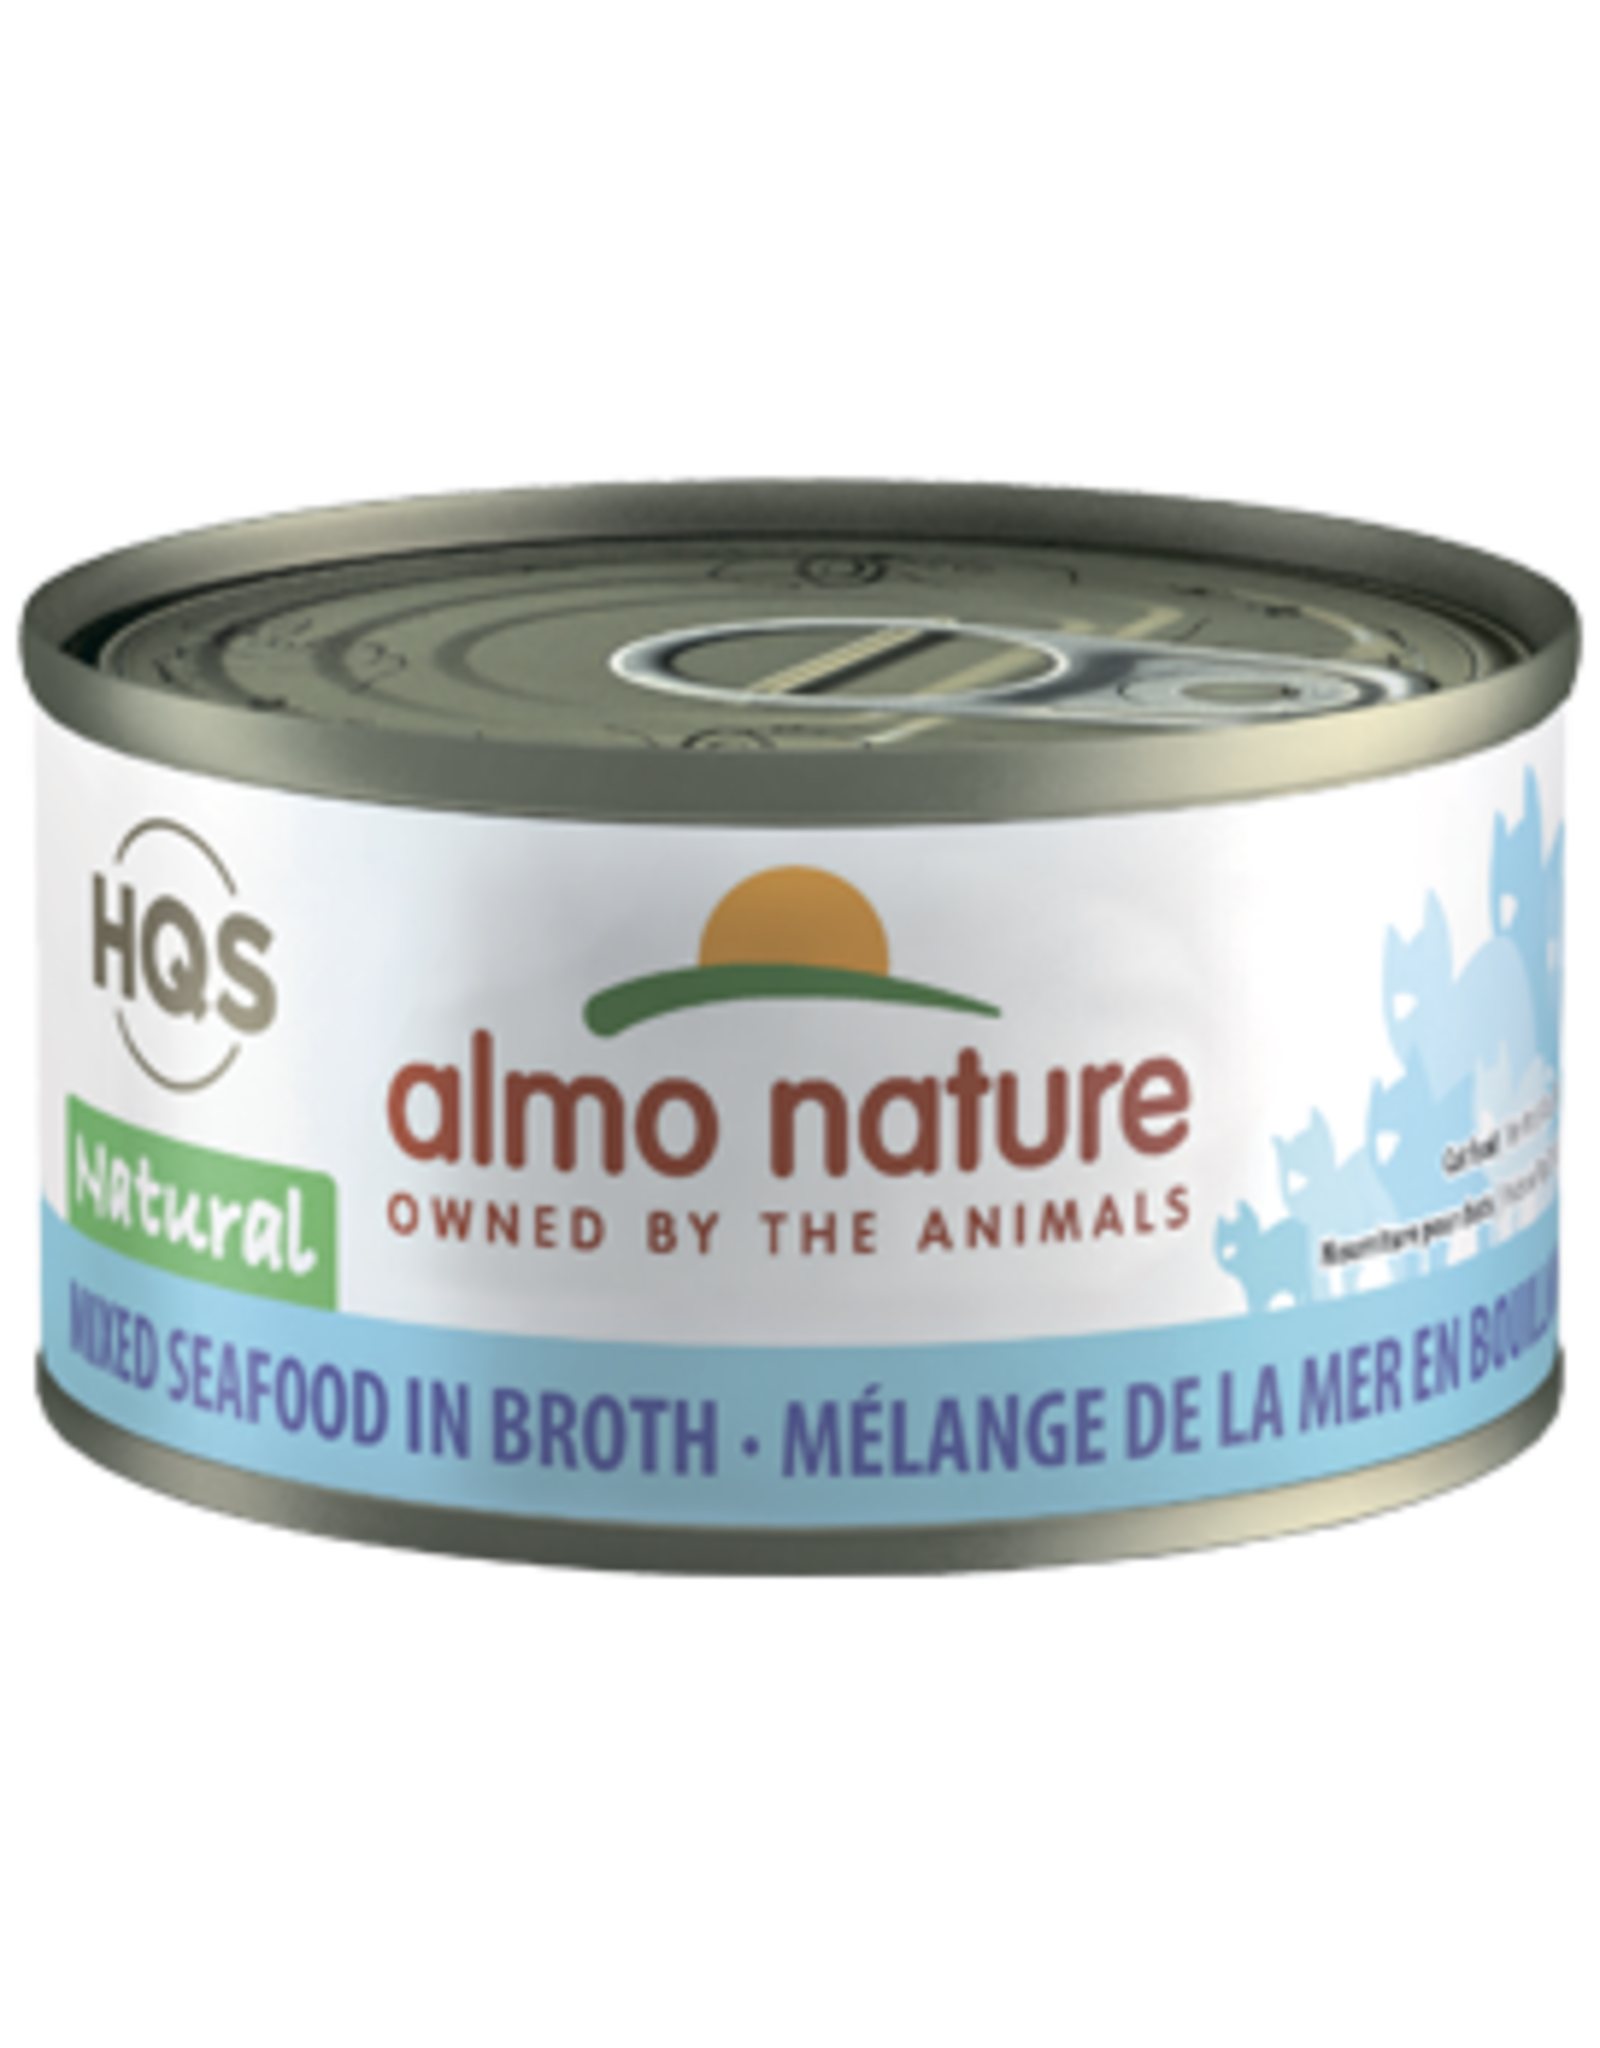 Almo Nature Almo Nature HQS Natural Mixed Seafood in Broth Cat Food 2.47 Oz